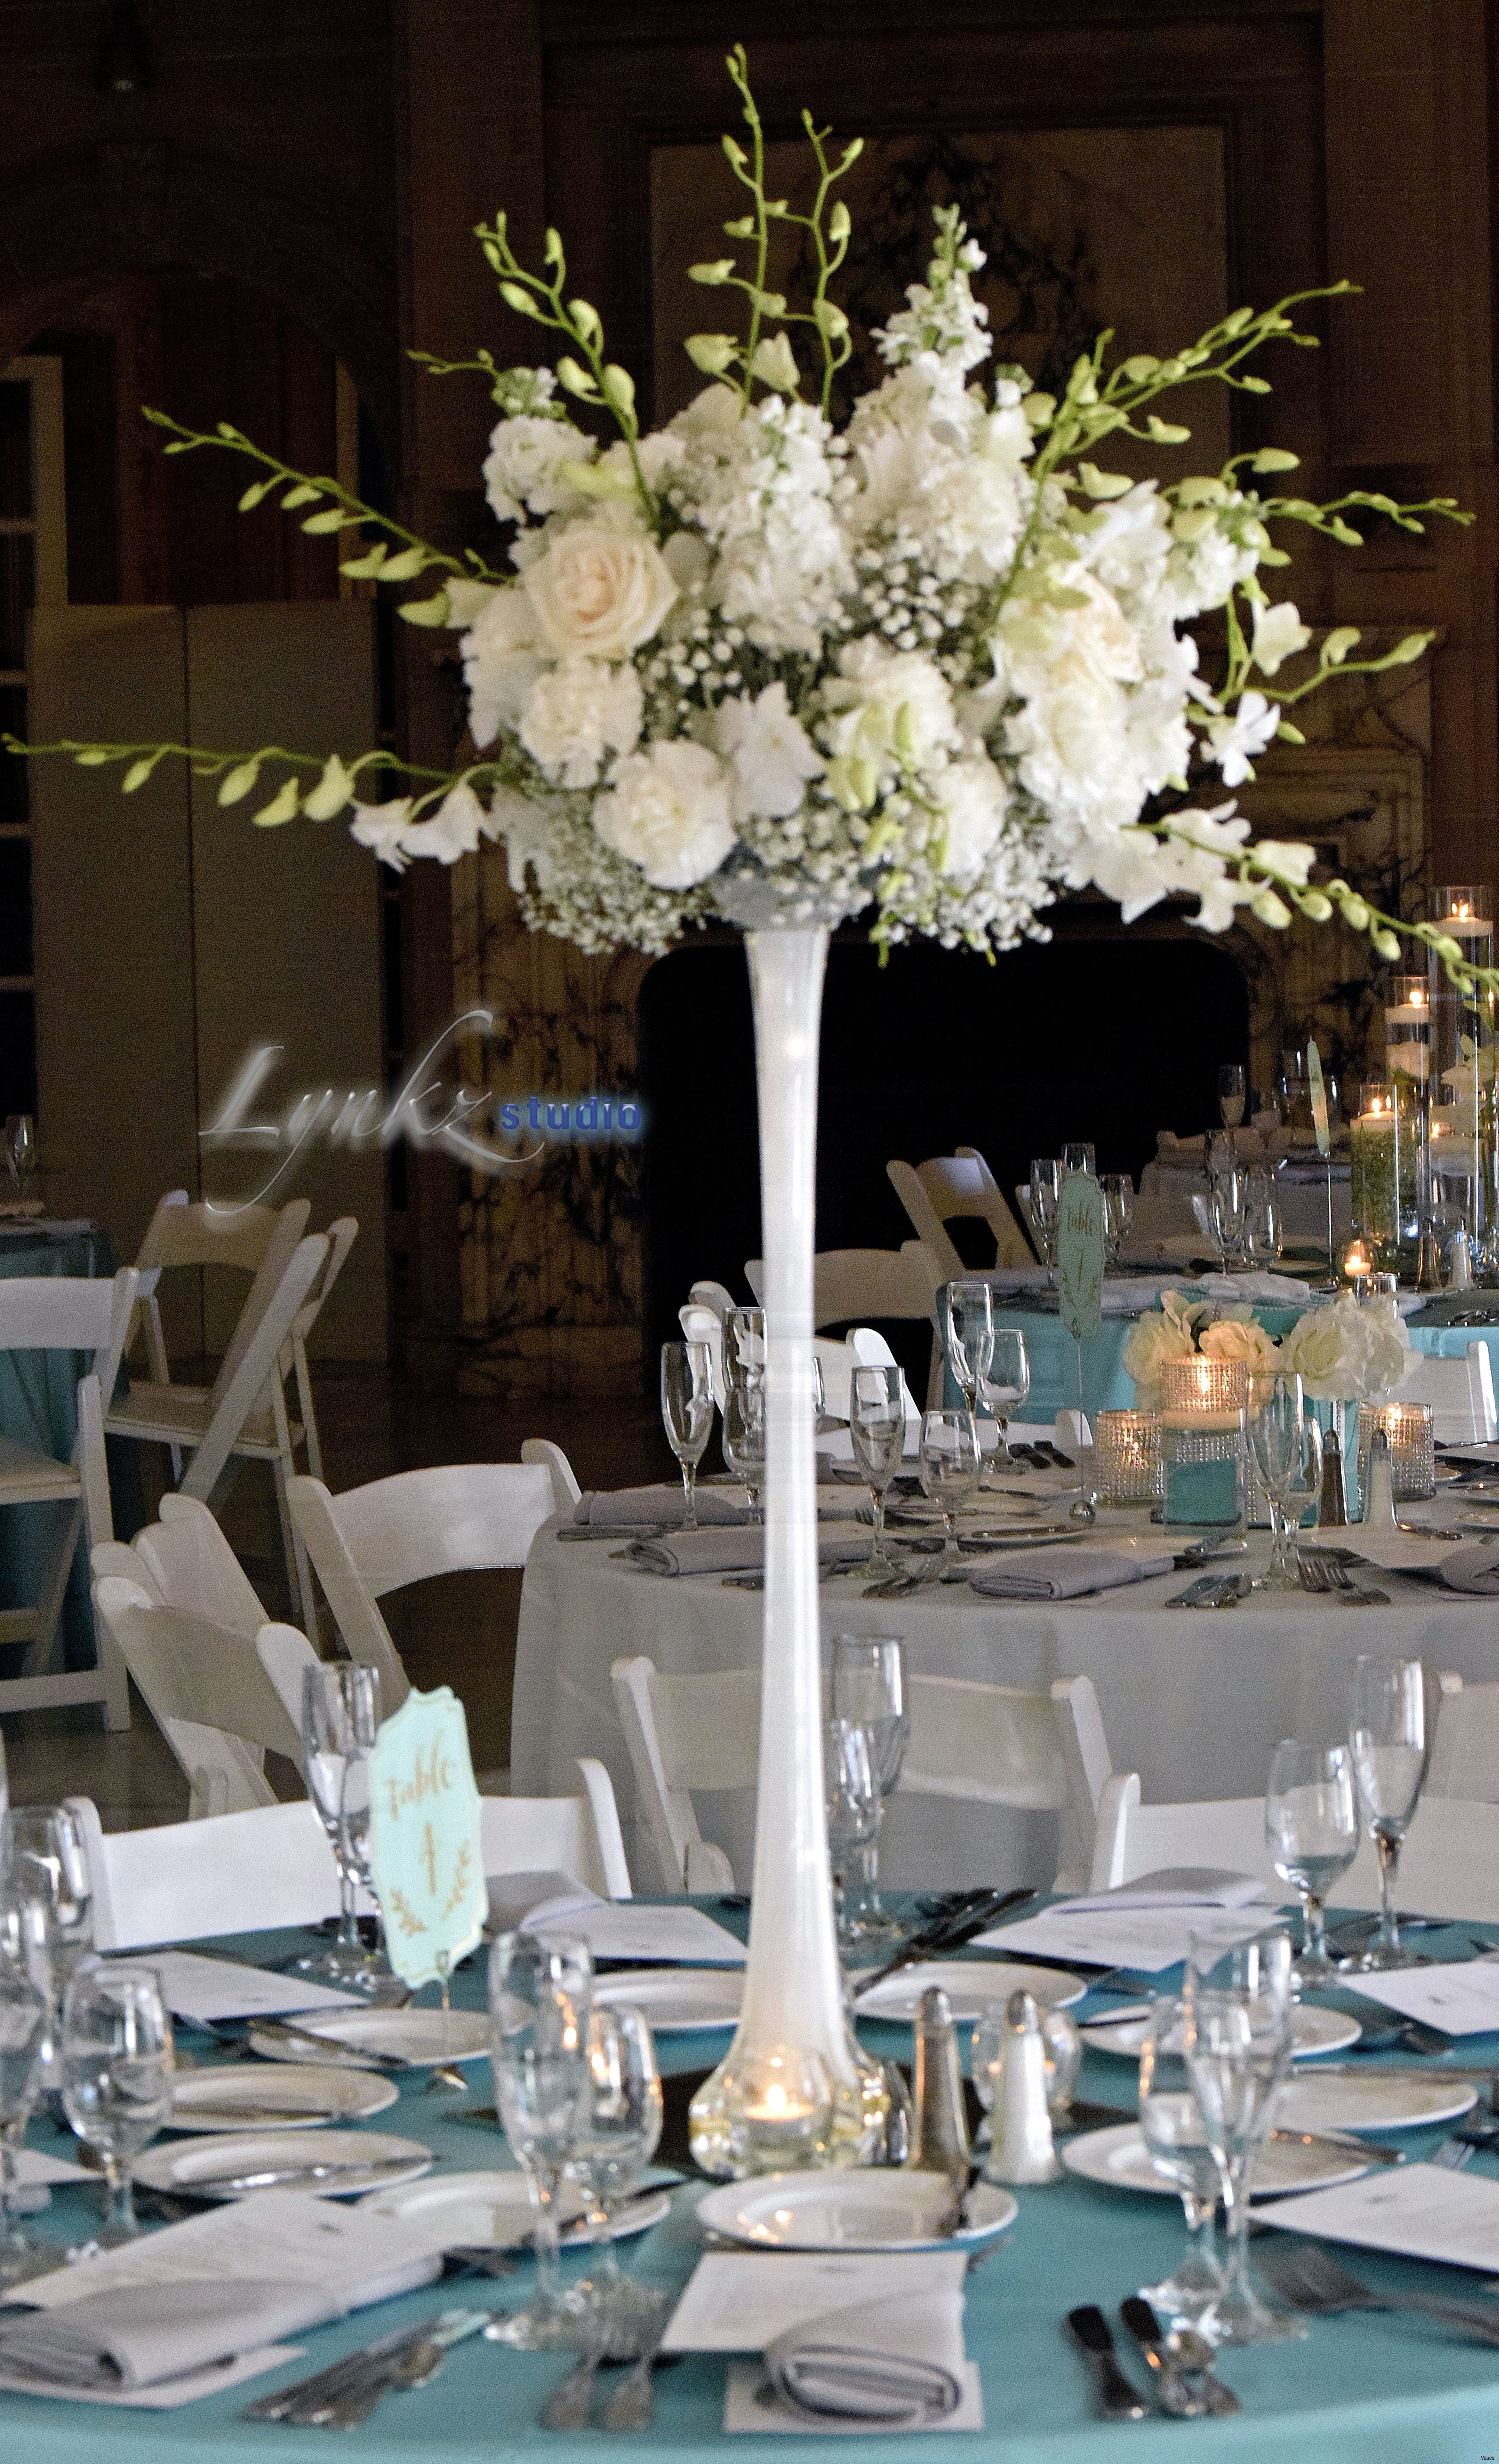 victorian style vases of vase decoration ideas best of vases eiffel tower vase lights with regard to vase decoration ideas best of vases eiffel tower vase lights hydrangea with grass vasei 0d scheme